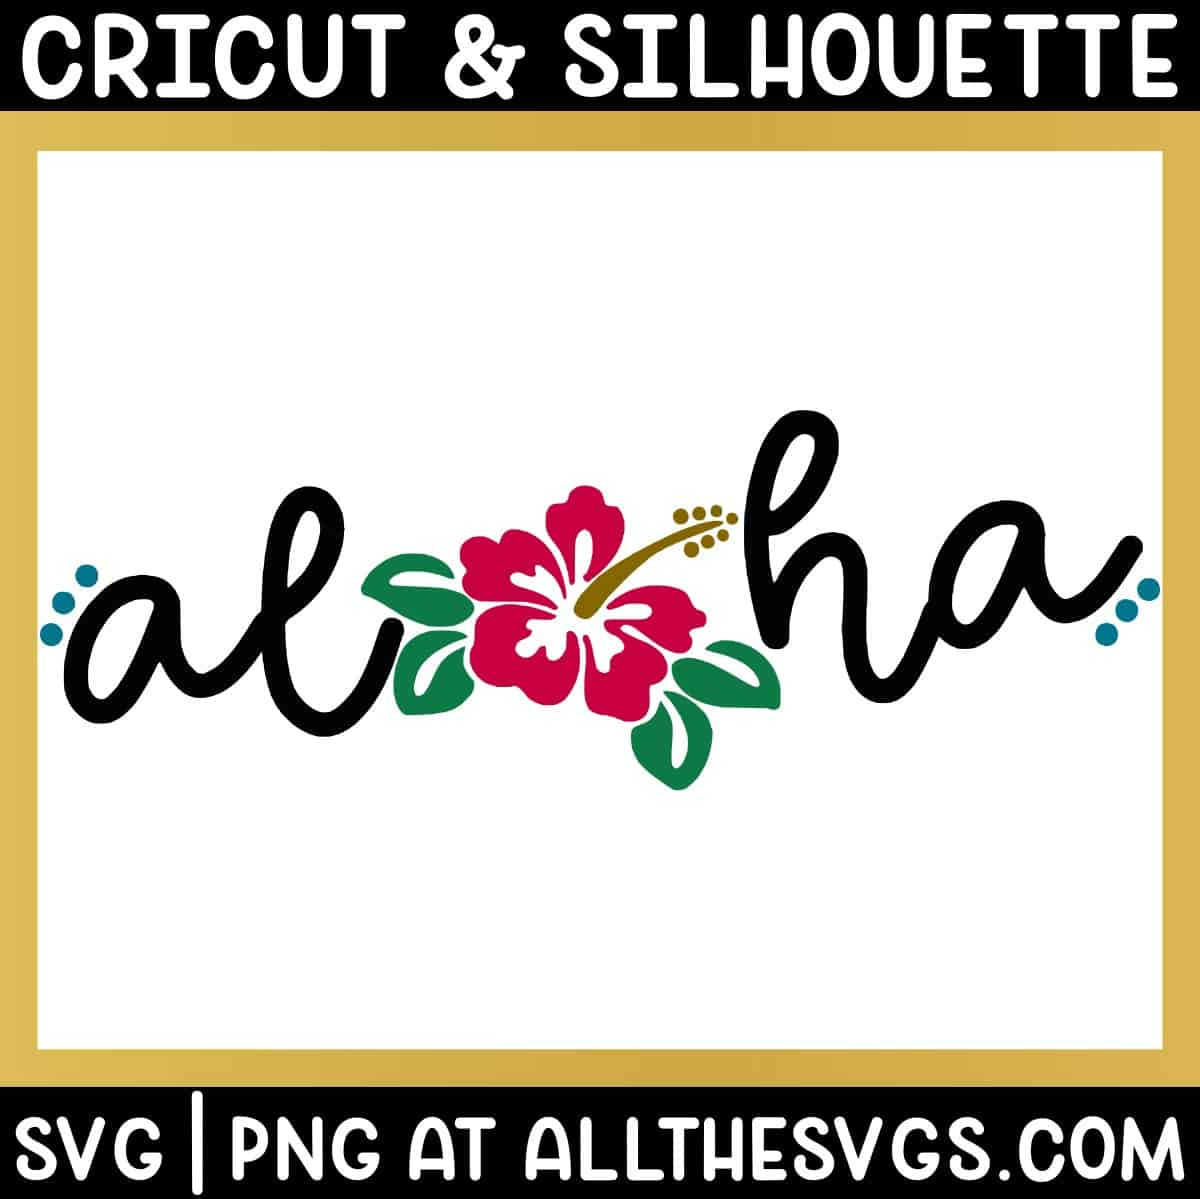 free aloha svg png in fun script with hibiscus in place of o.